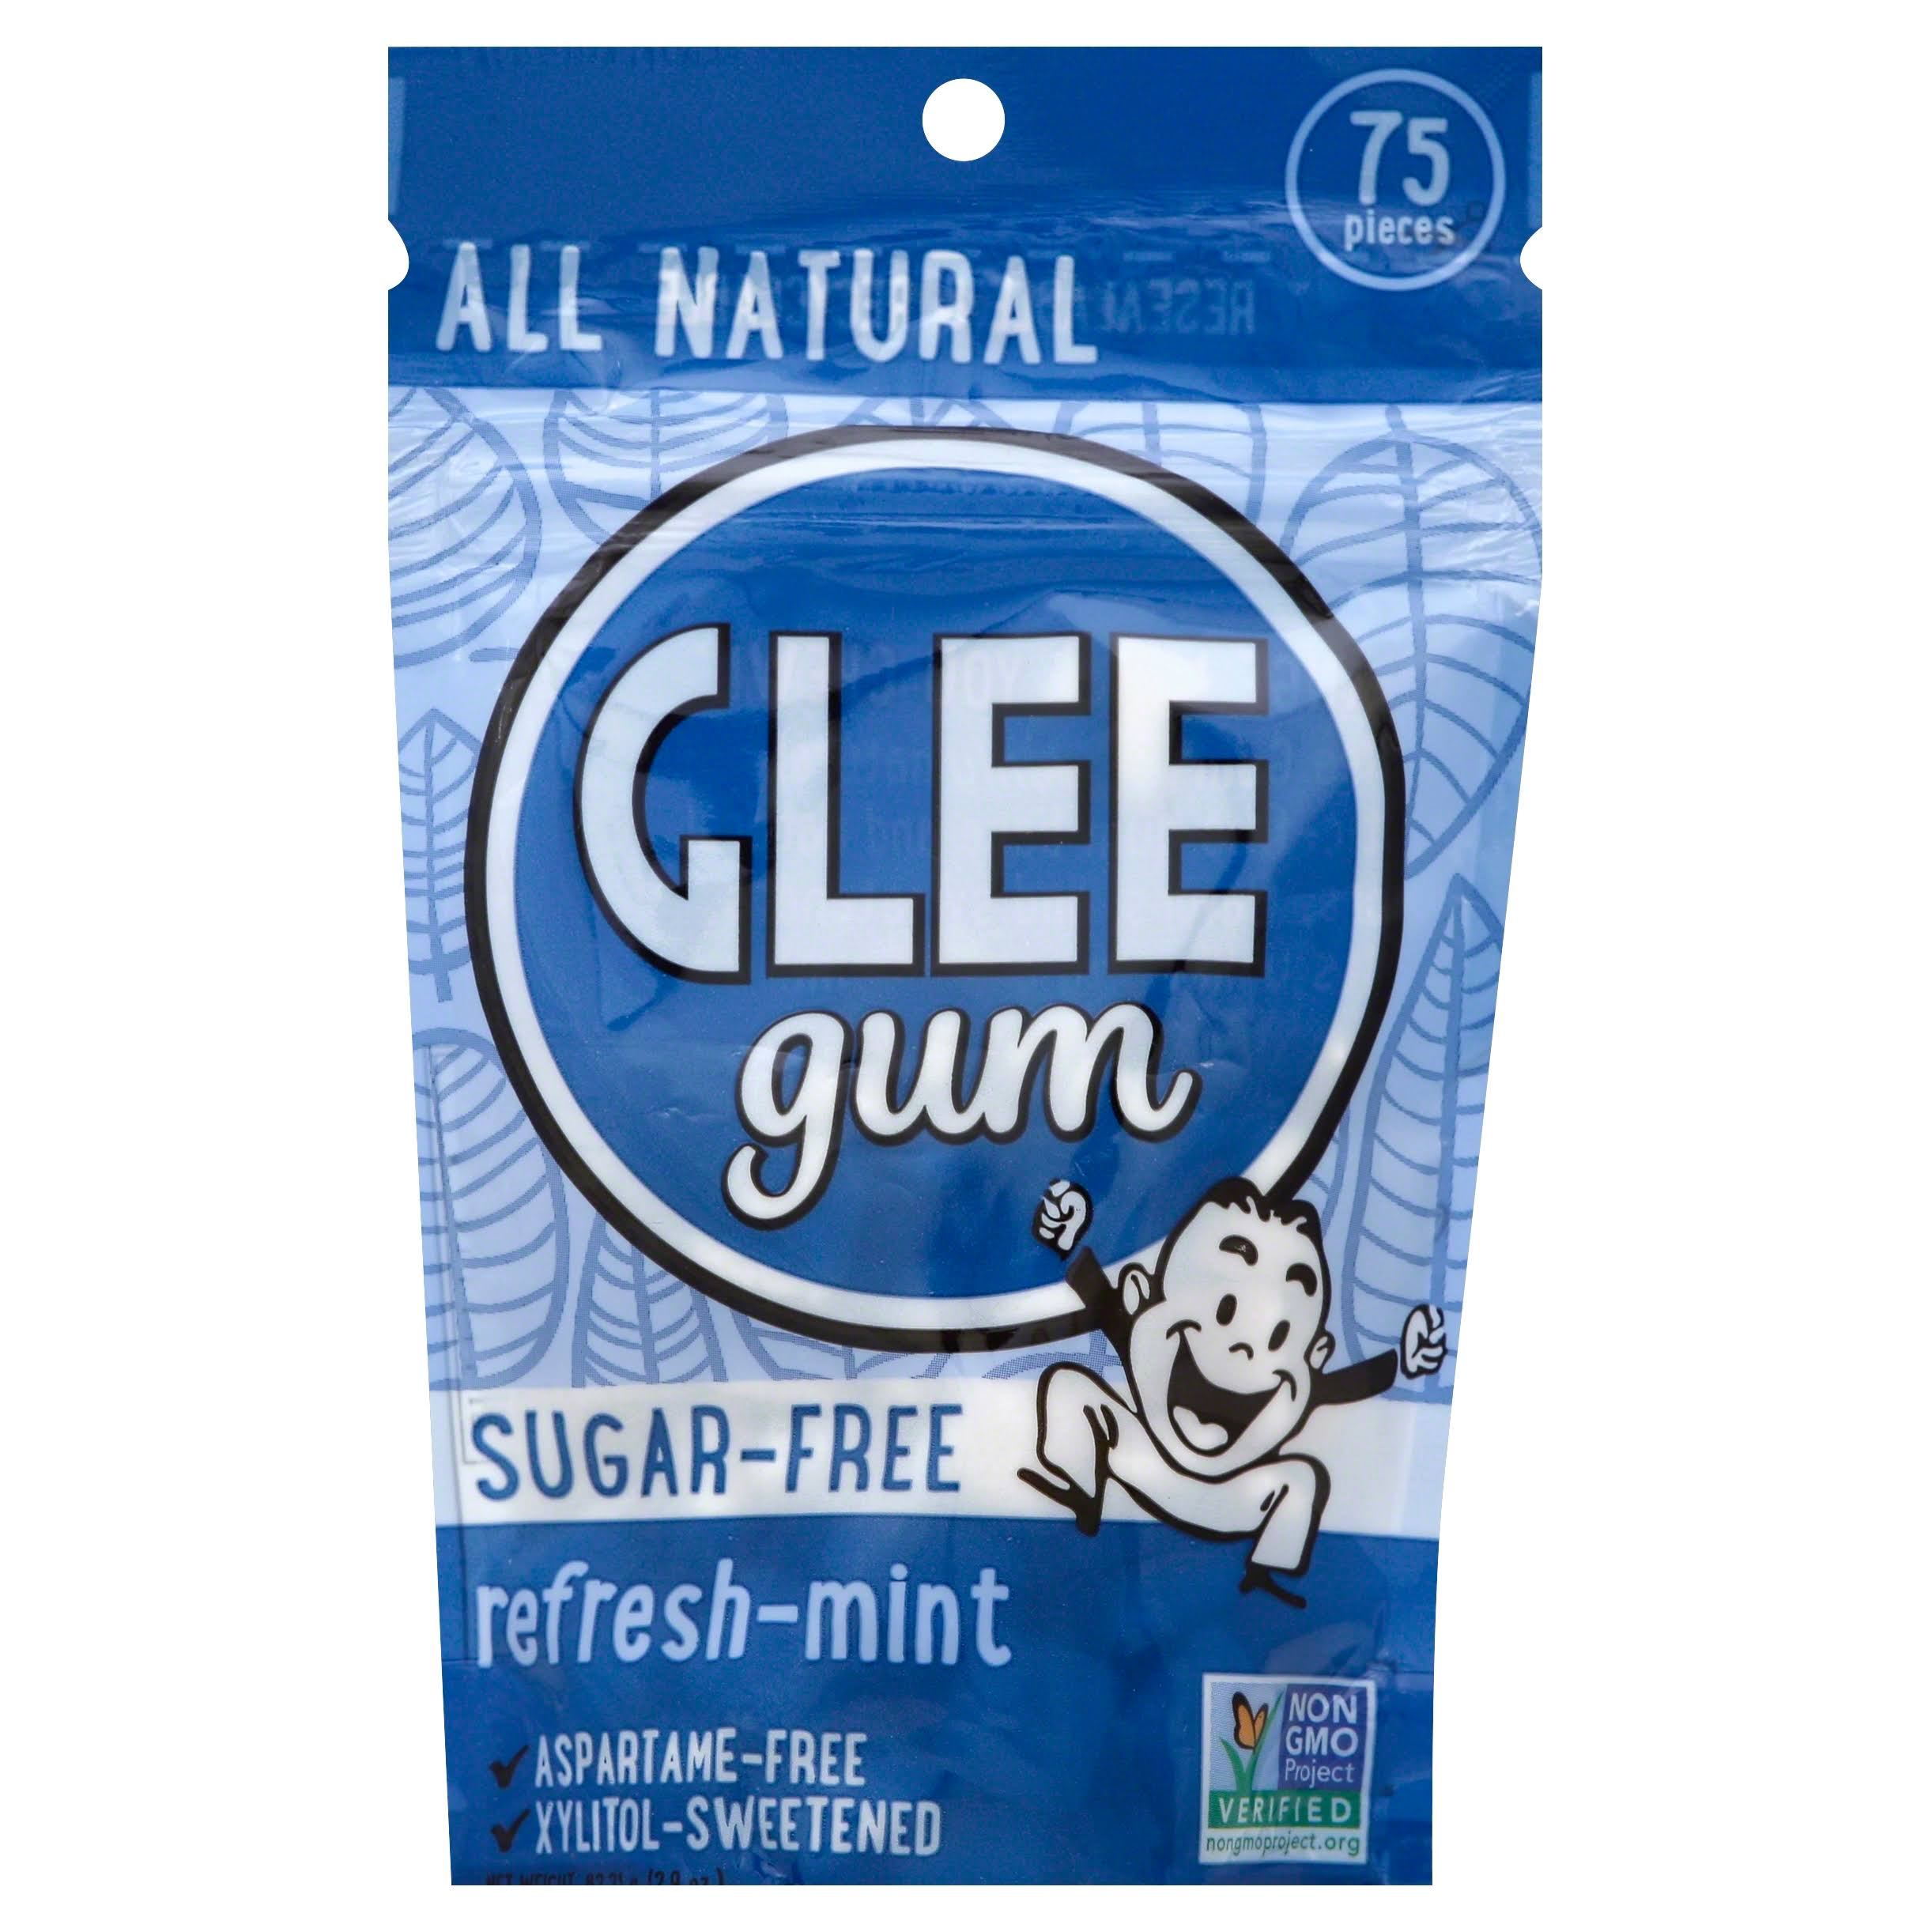 Glee Gum Sugar Free Chewing Gum - 75 Pieces